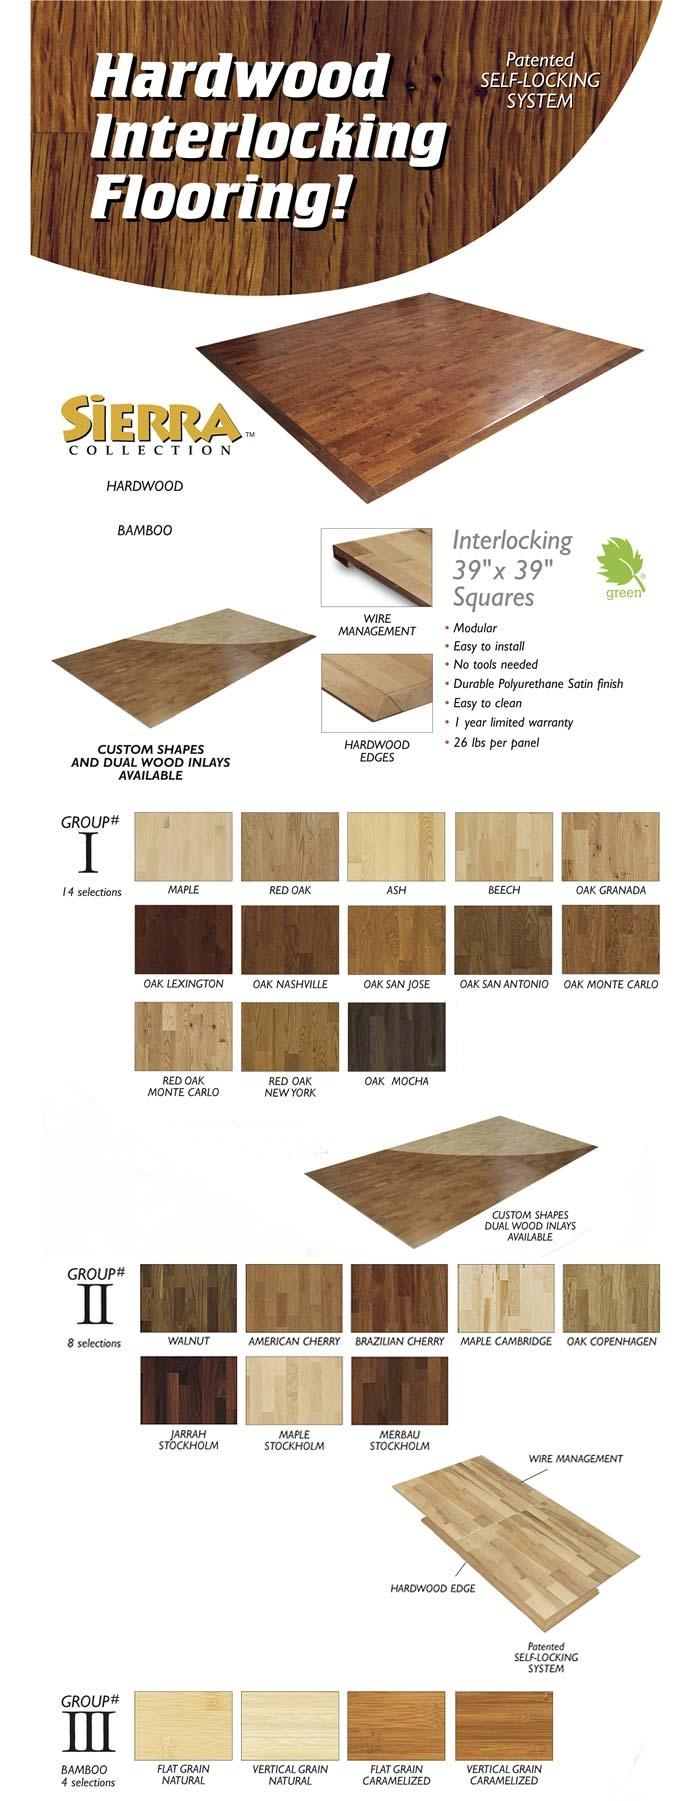 Hardwood Interlocking flooring photo chart